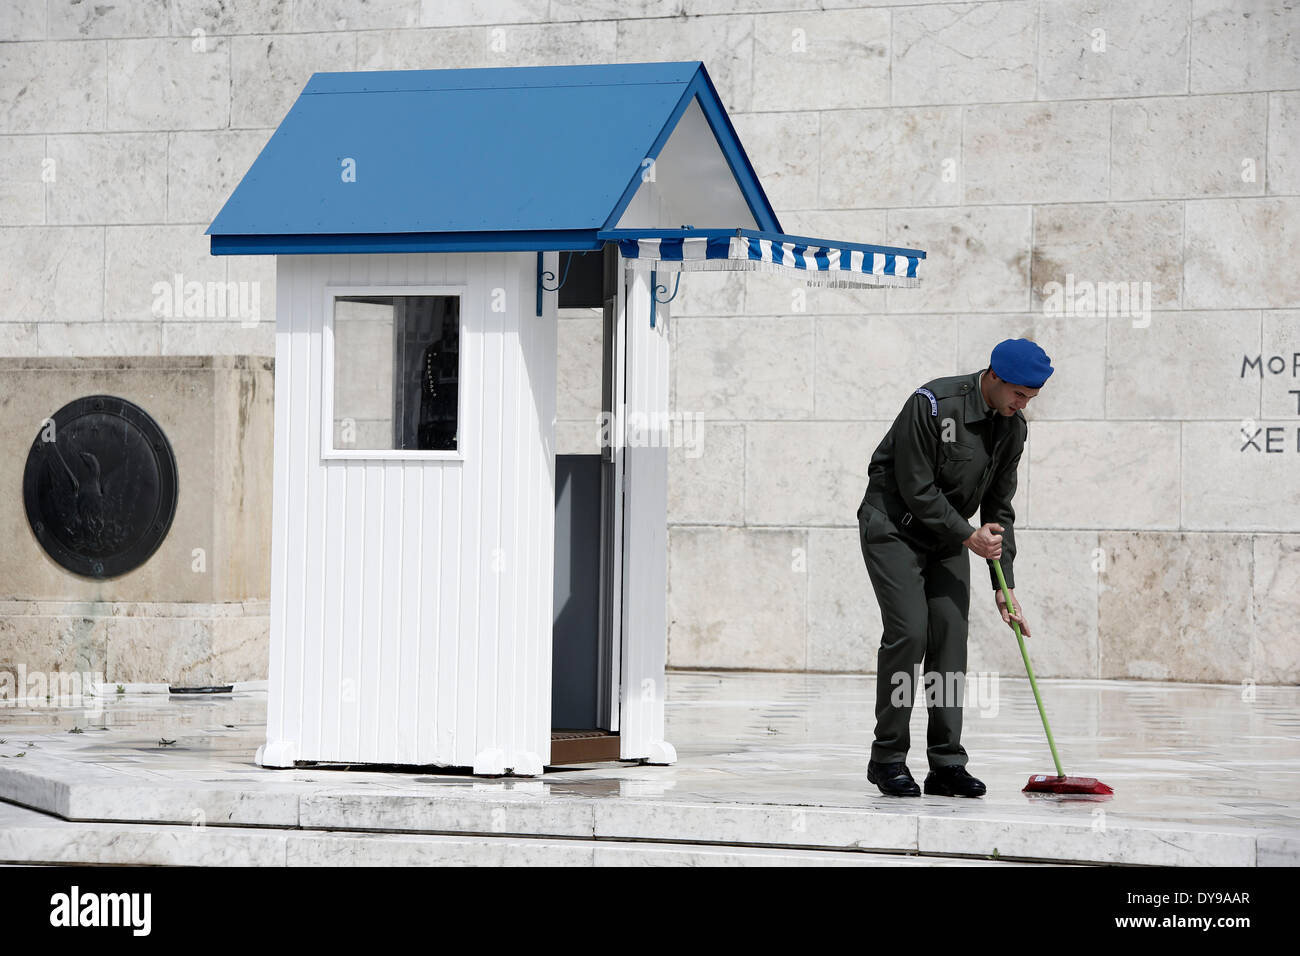 Athens, Greece. 10th Apr, 2014. A Greek soldier wipes the rainwater in front of the monument of the Unknown Soldier Stock Photo